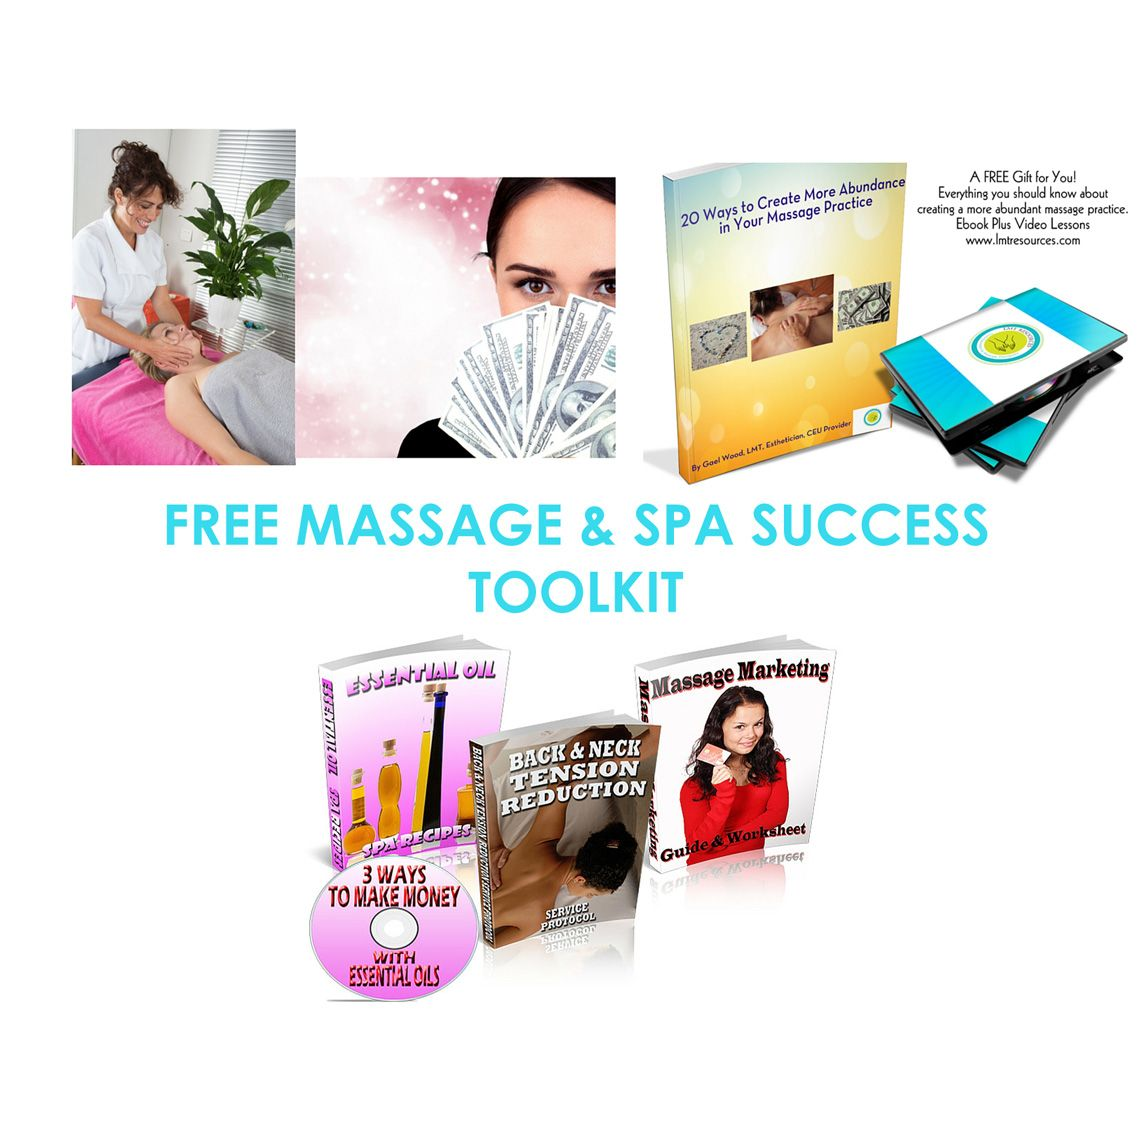 undefined (With images) Massage business, Spa massage